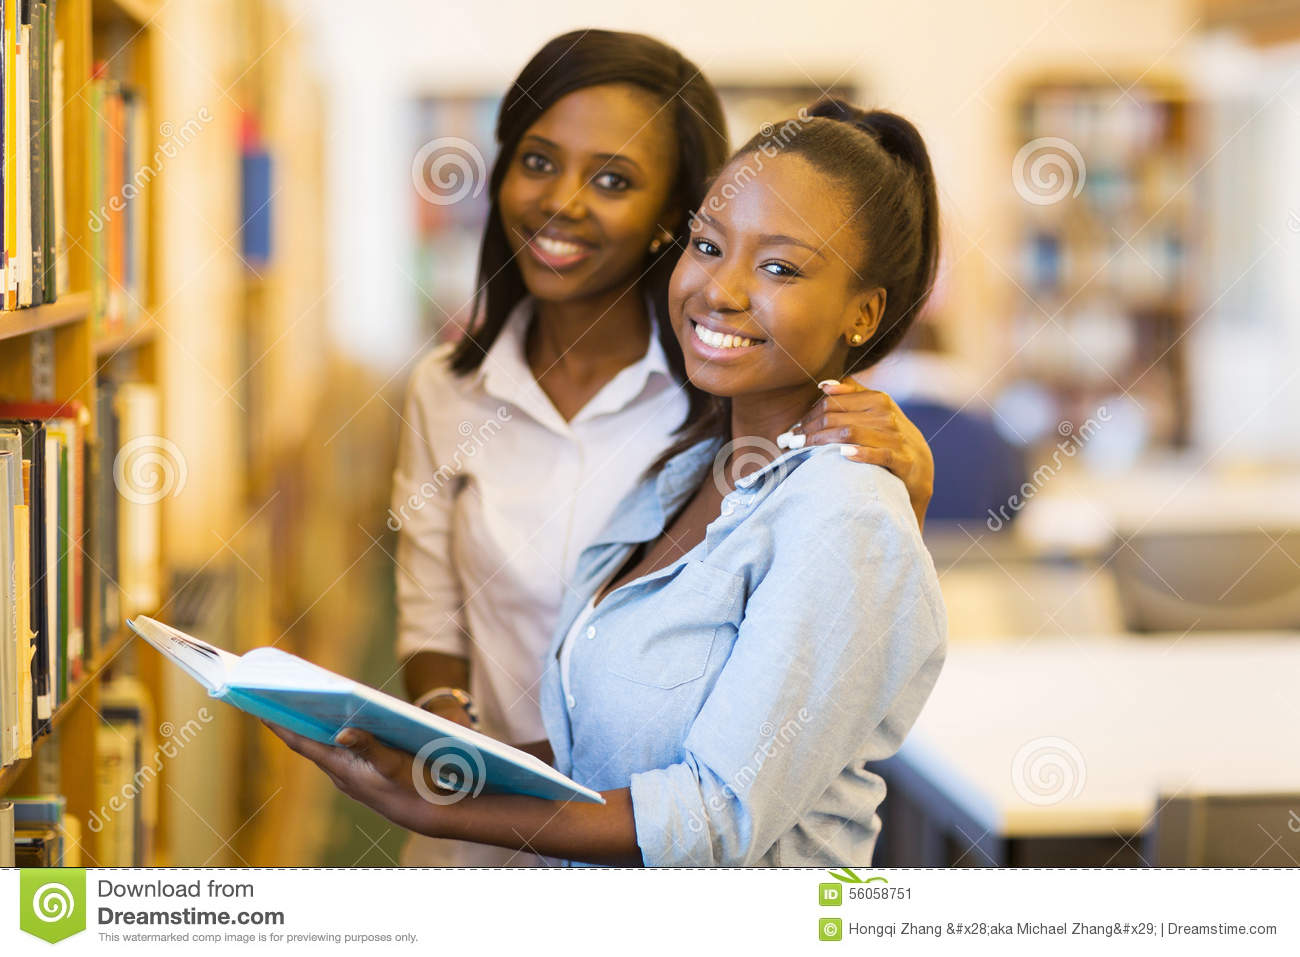 Download Female African University Students Stock Image - Image of happy, book: 56058751